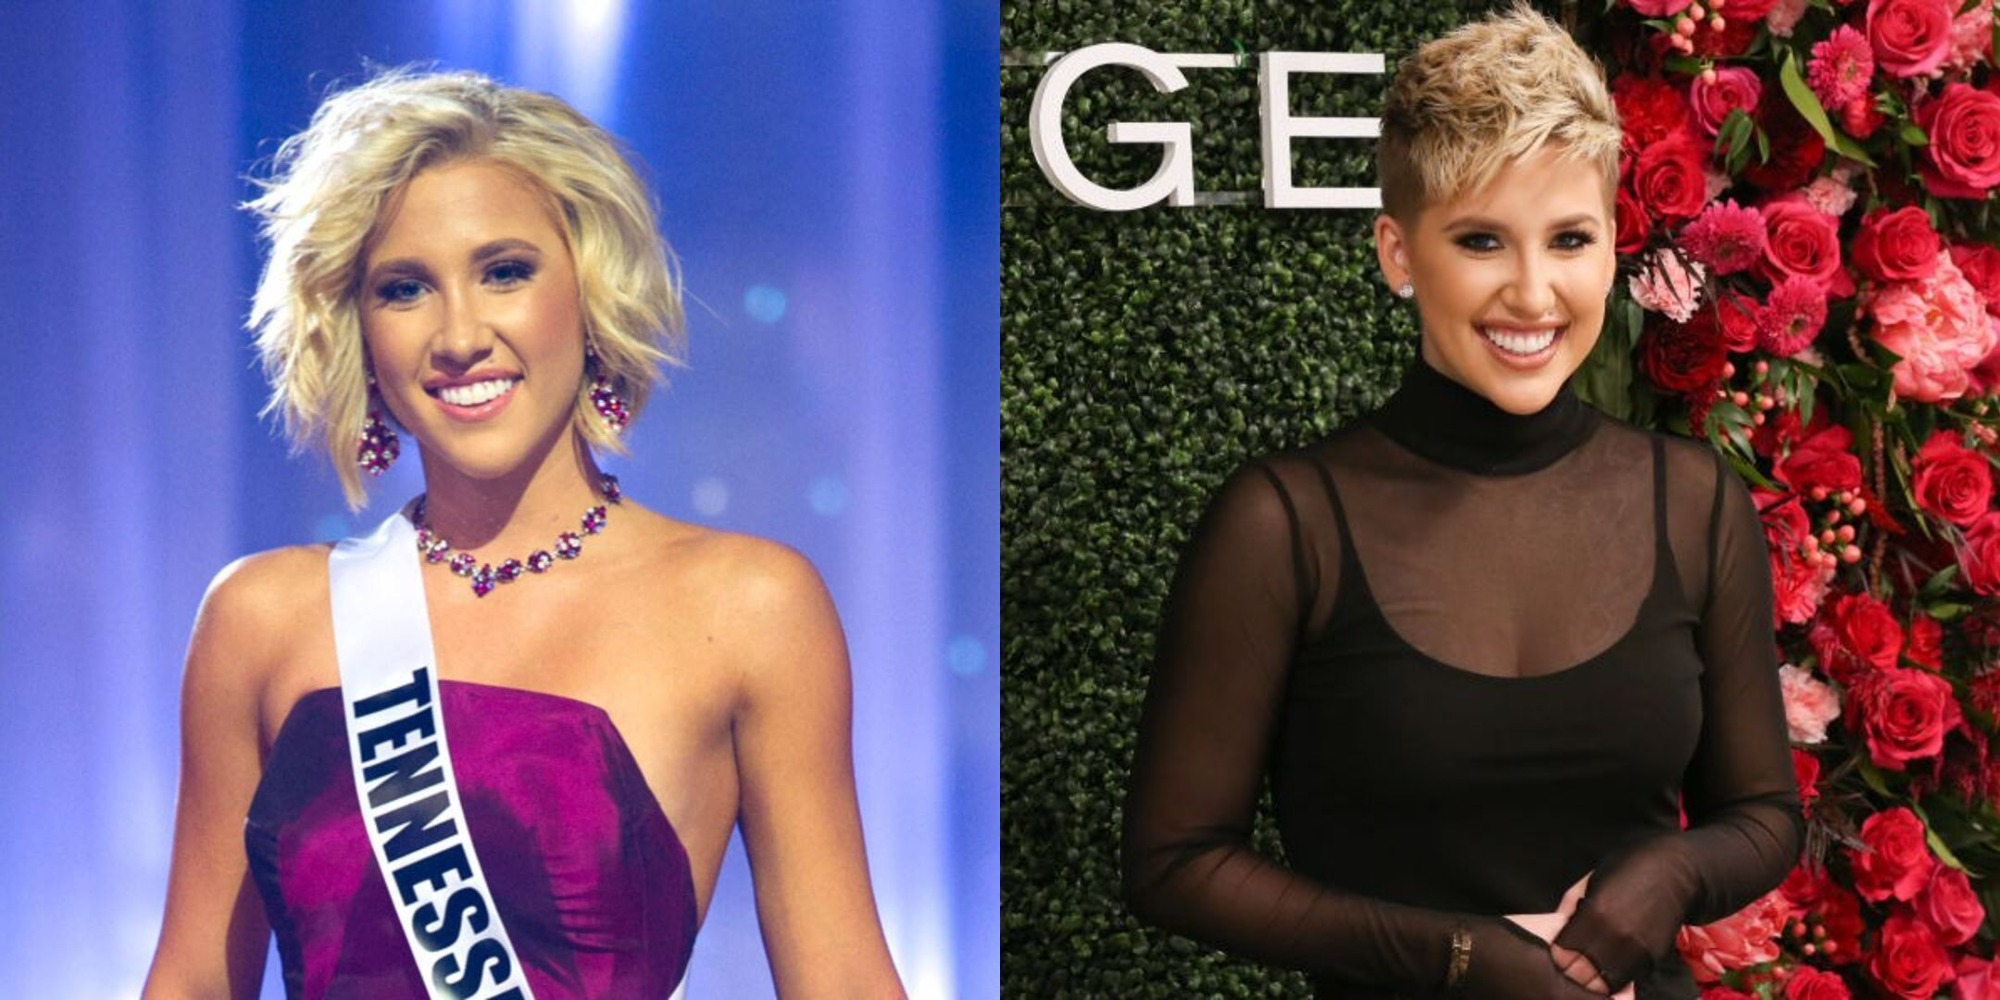 Savannah Chrisley before and after plastic surgery, notably nose job and breast implants.